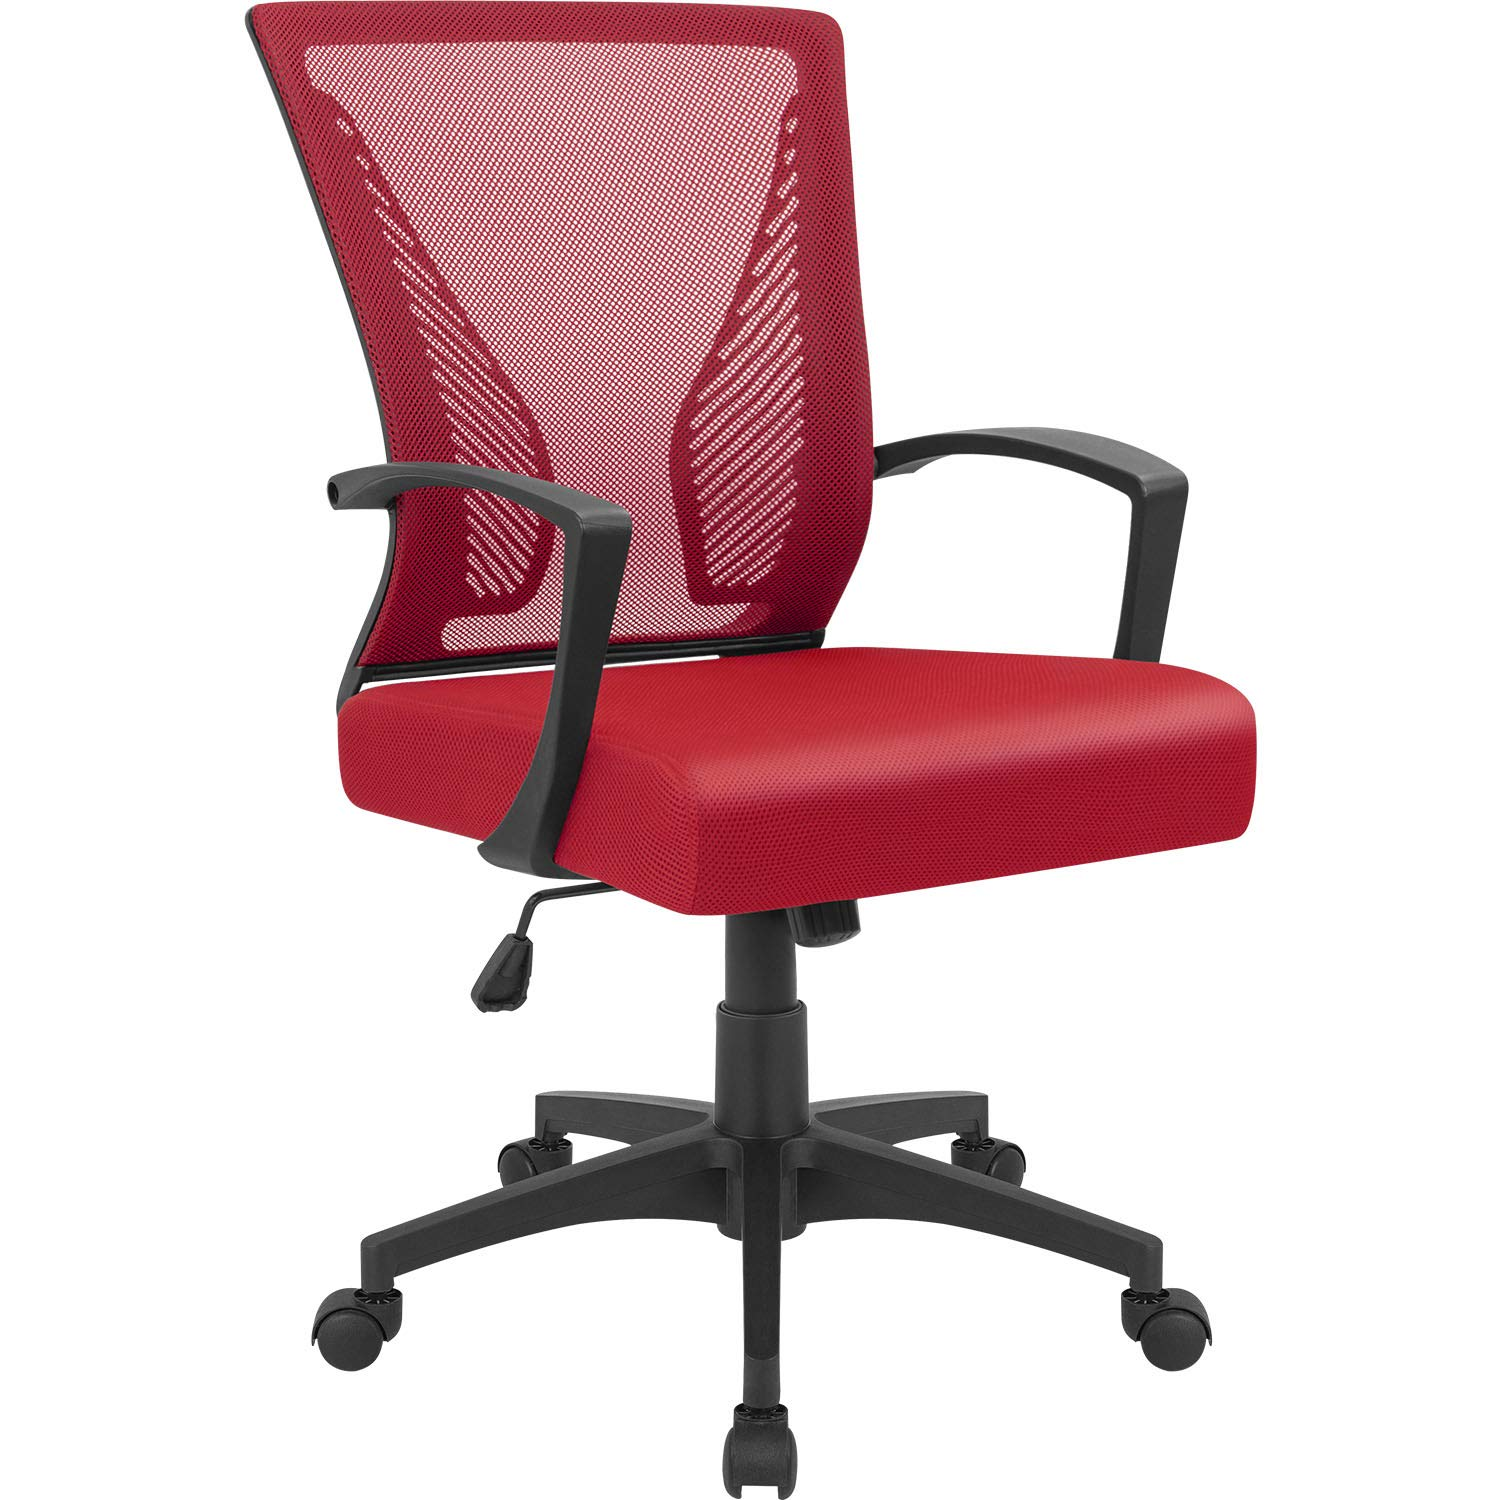 Furmax Office Chair Mid Back Swivel Lumbar Support Desk Chair, Computer Ergonomic Mesh Chair with Armrest (Red) by Furmax